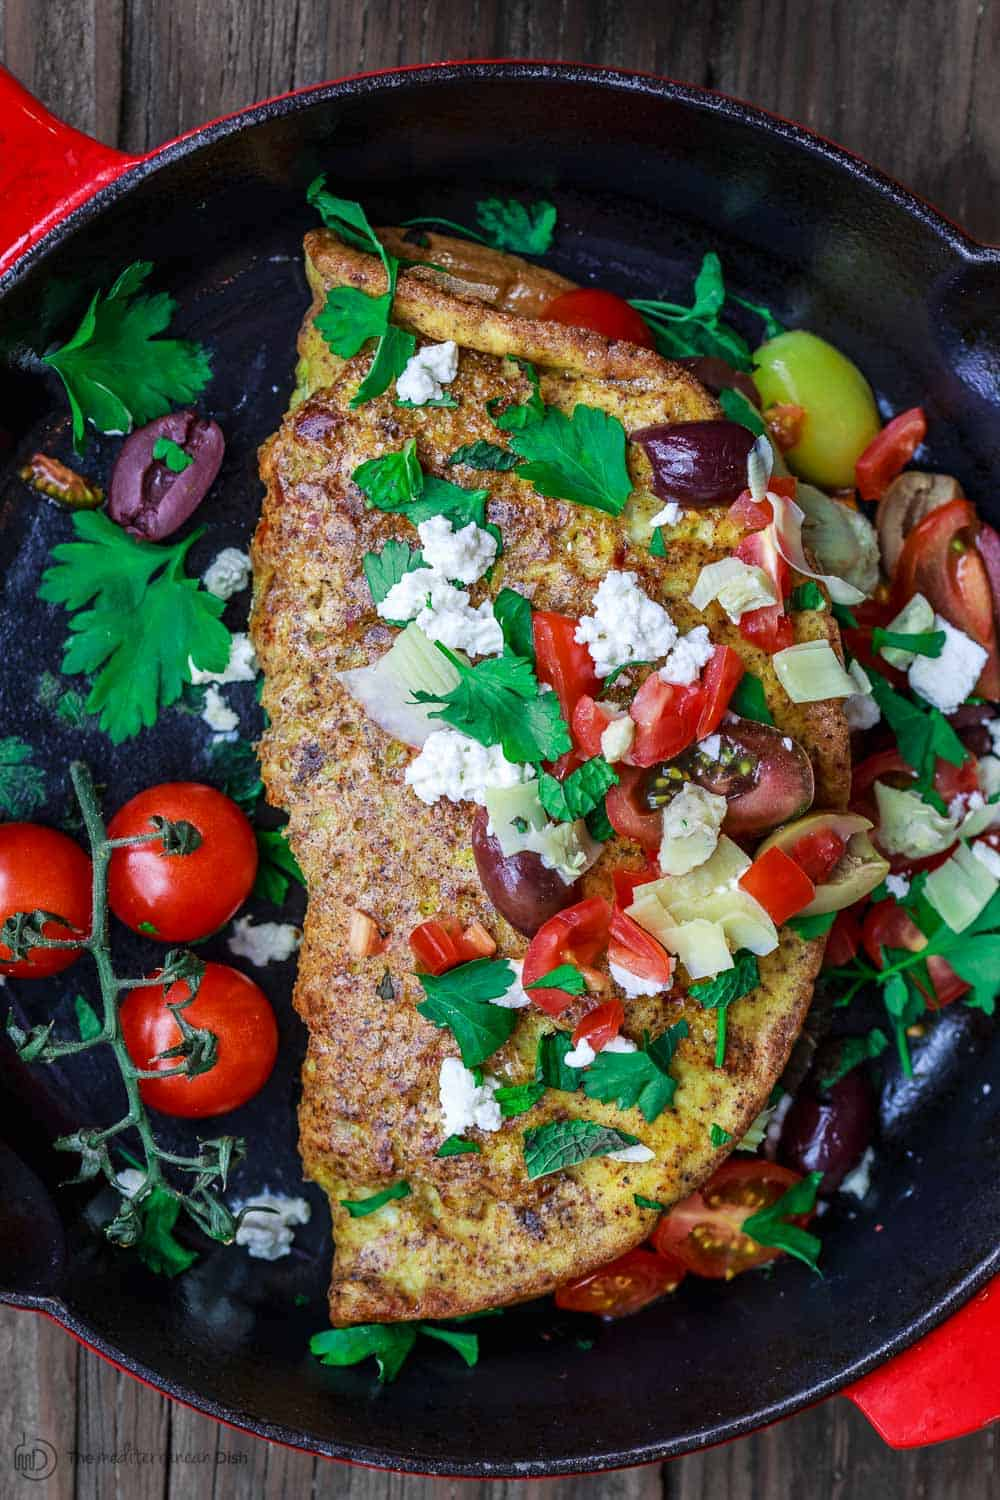 Egg Omelette covered in olives, tomatoes, feta cheese and parsley